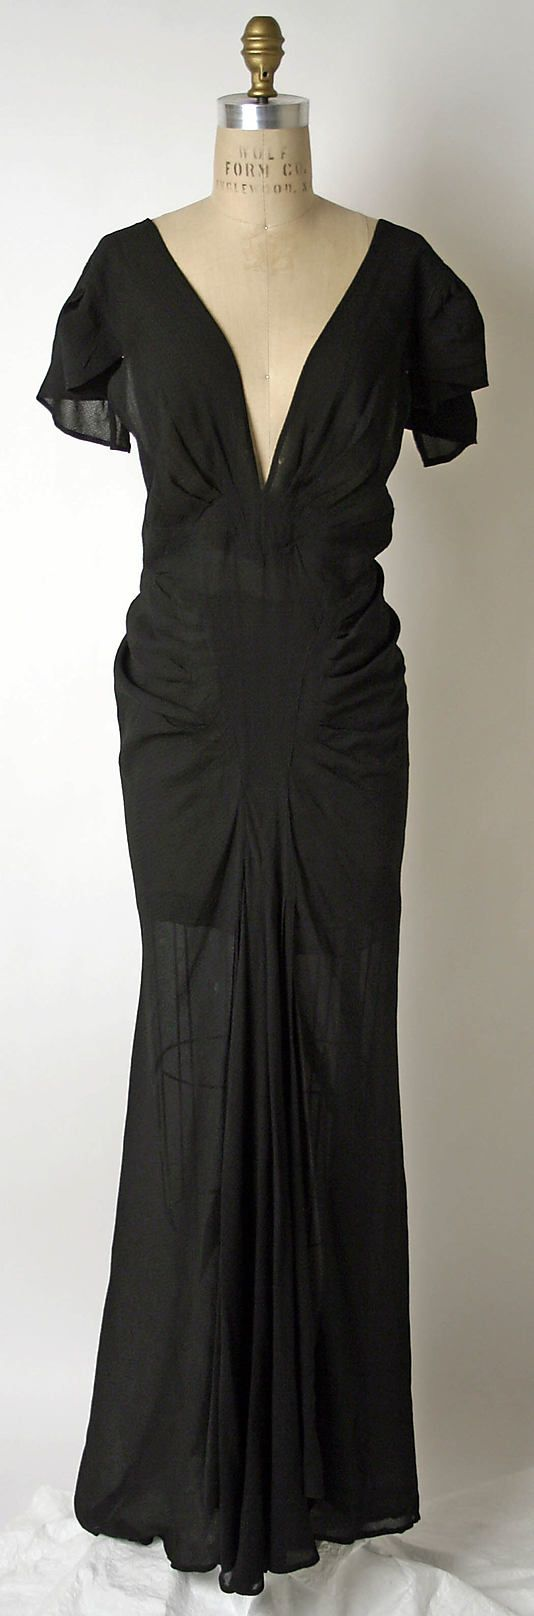 Evening dress House of Patou  (French, founded 1919) Designer: Jean Patou (French, 1887–1936) Date: ca. 1937 (front view) #1930s